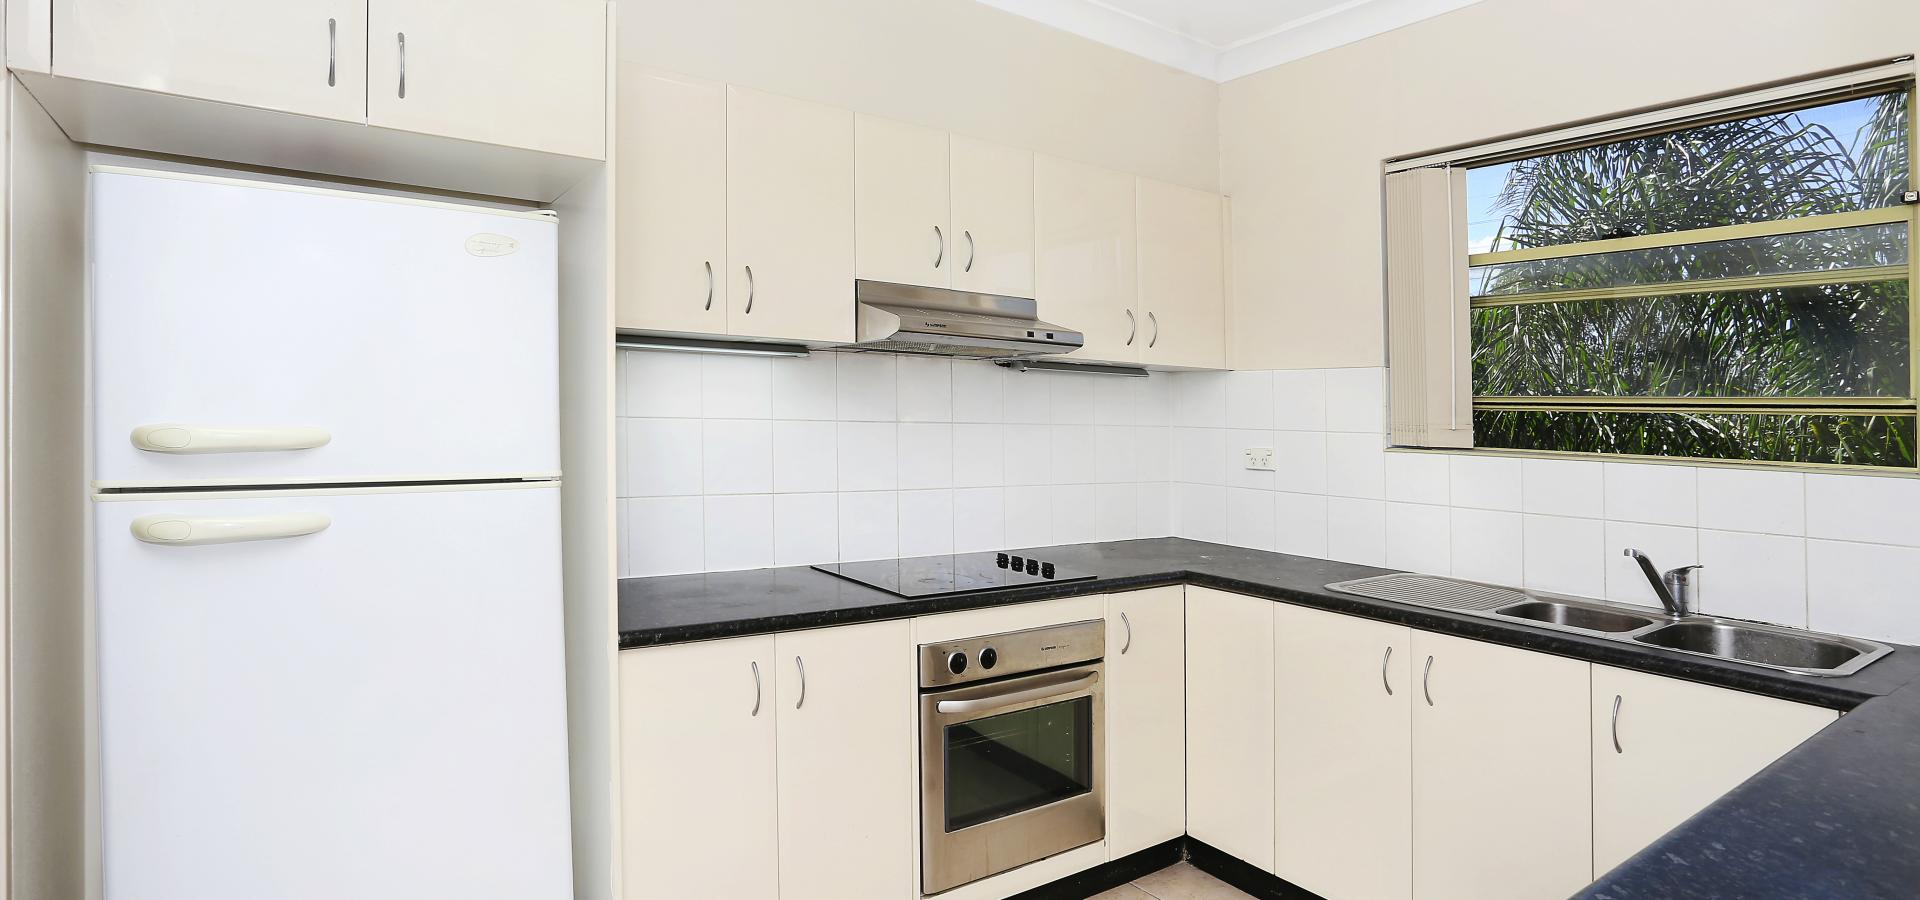 Great First Home   Investment   Downsize